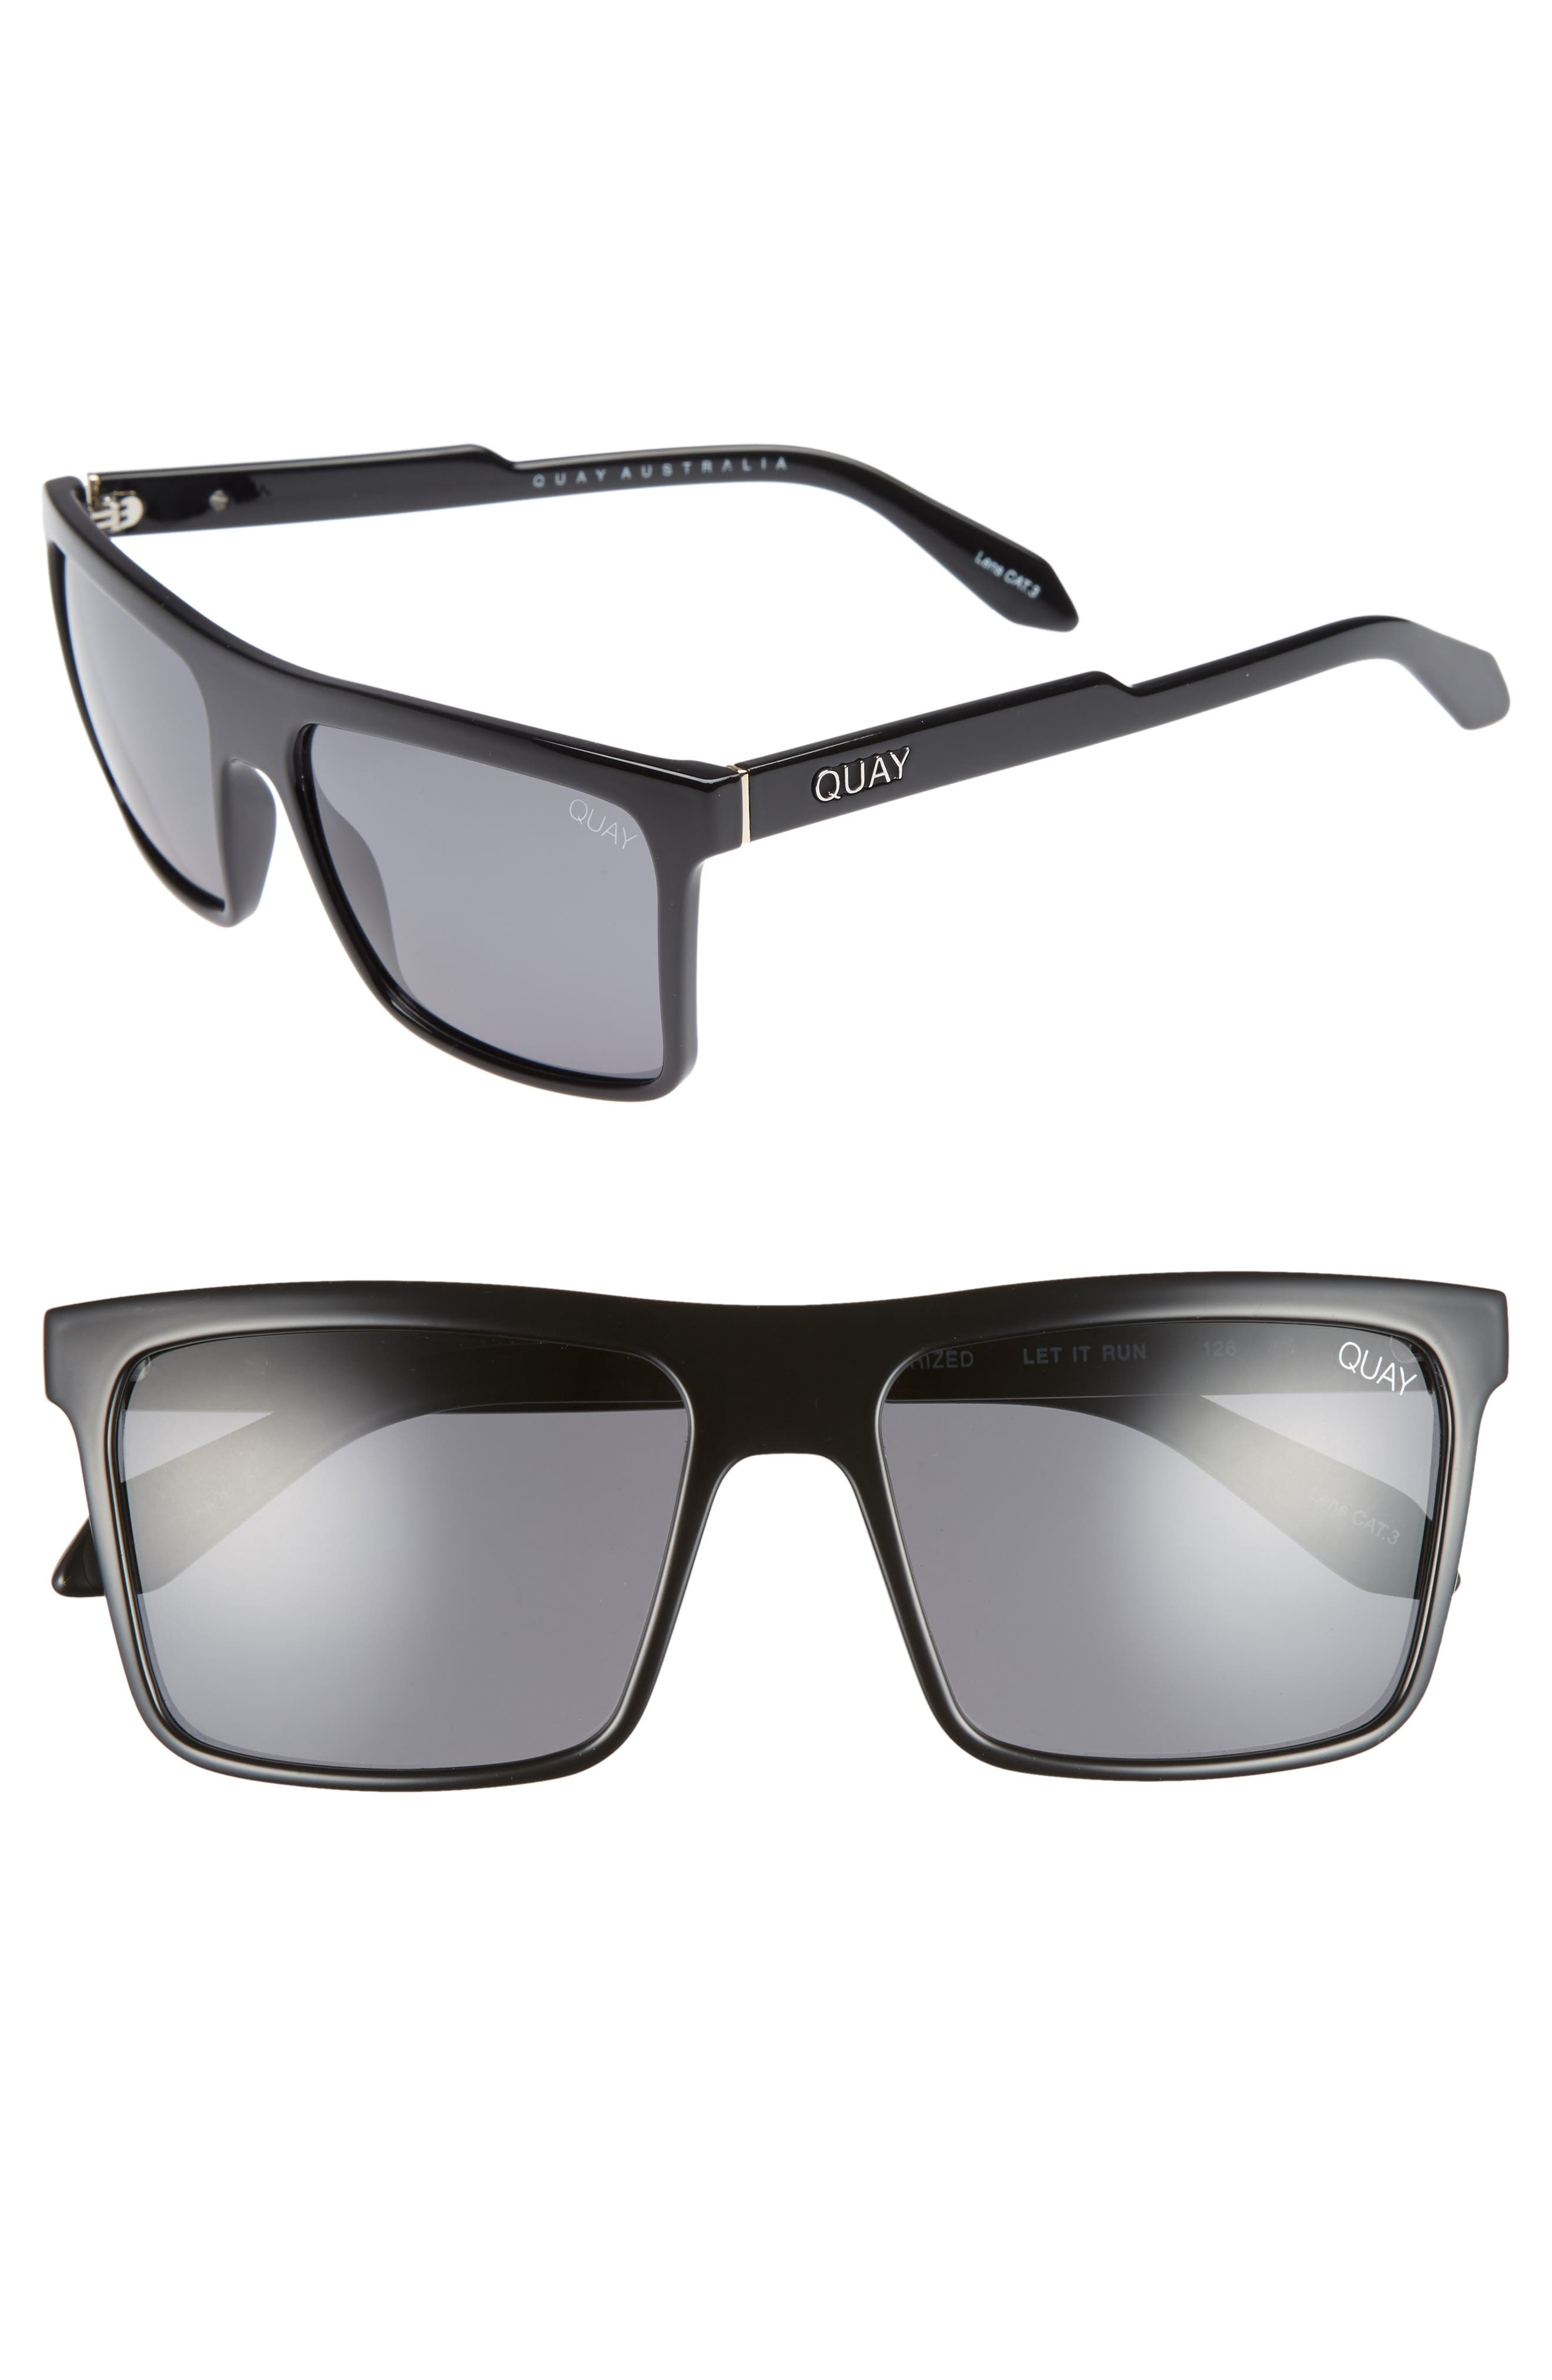 Let It Run 57mm Polarized Sunglasses,                             Main thumbnail 1, color,                             BLACK / SMOKE LENS